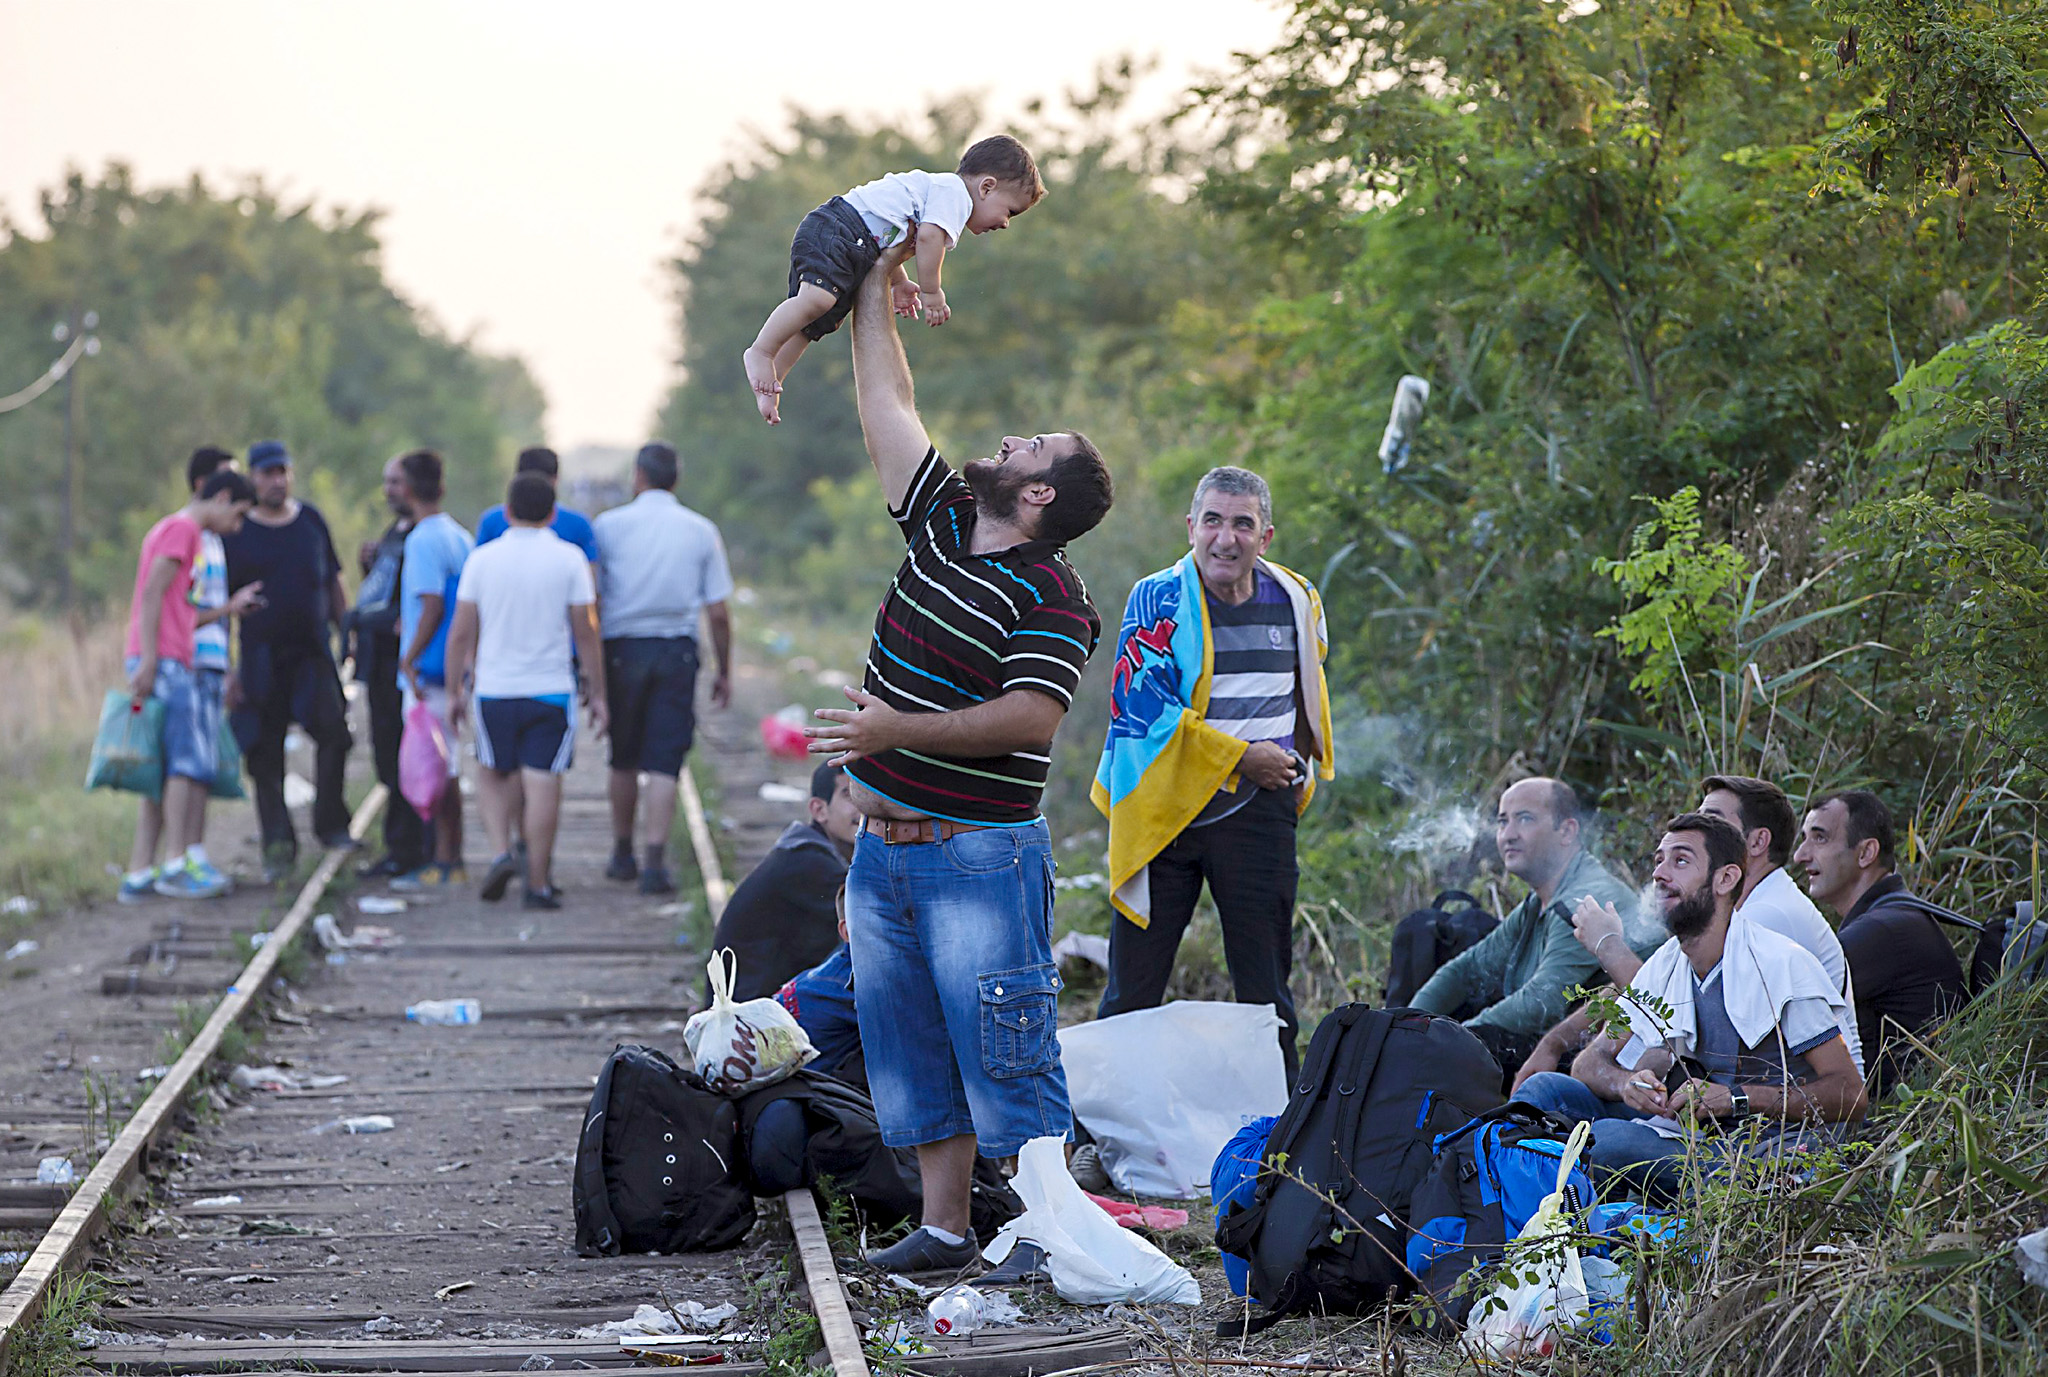 "ATTENTION EDITORS - REUTERS PICTURE HIGHLIGHT...ATTENTION EDITORS - REUTERS PICTURE HIGHLIGHTMDJ200A migrant, hoping to cross into Hungary, plays with a child along a railway track outside the village of Horgos in Serbia, towards the border it shares with Hungary, August 31, 2015.  REUTERS/Marko Djurica  TPX IMAGES OF THE DAYREUTERS NEWS PICTURES HAS NOW MADE IT EASIER TO FIND THE BEST PHOTOS FROM THE MOST IMPORTANT STORIES AND TOP STANDALONES EACH DAY. Search for ""TPX"" in the IPTC Supplemental Category field or ""IMAGES OF THE DAY"" in the Caption field and you will find a selection of 80-100 of our daily Top Pictures.REUTERS NEWS PICTURES."